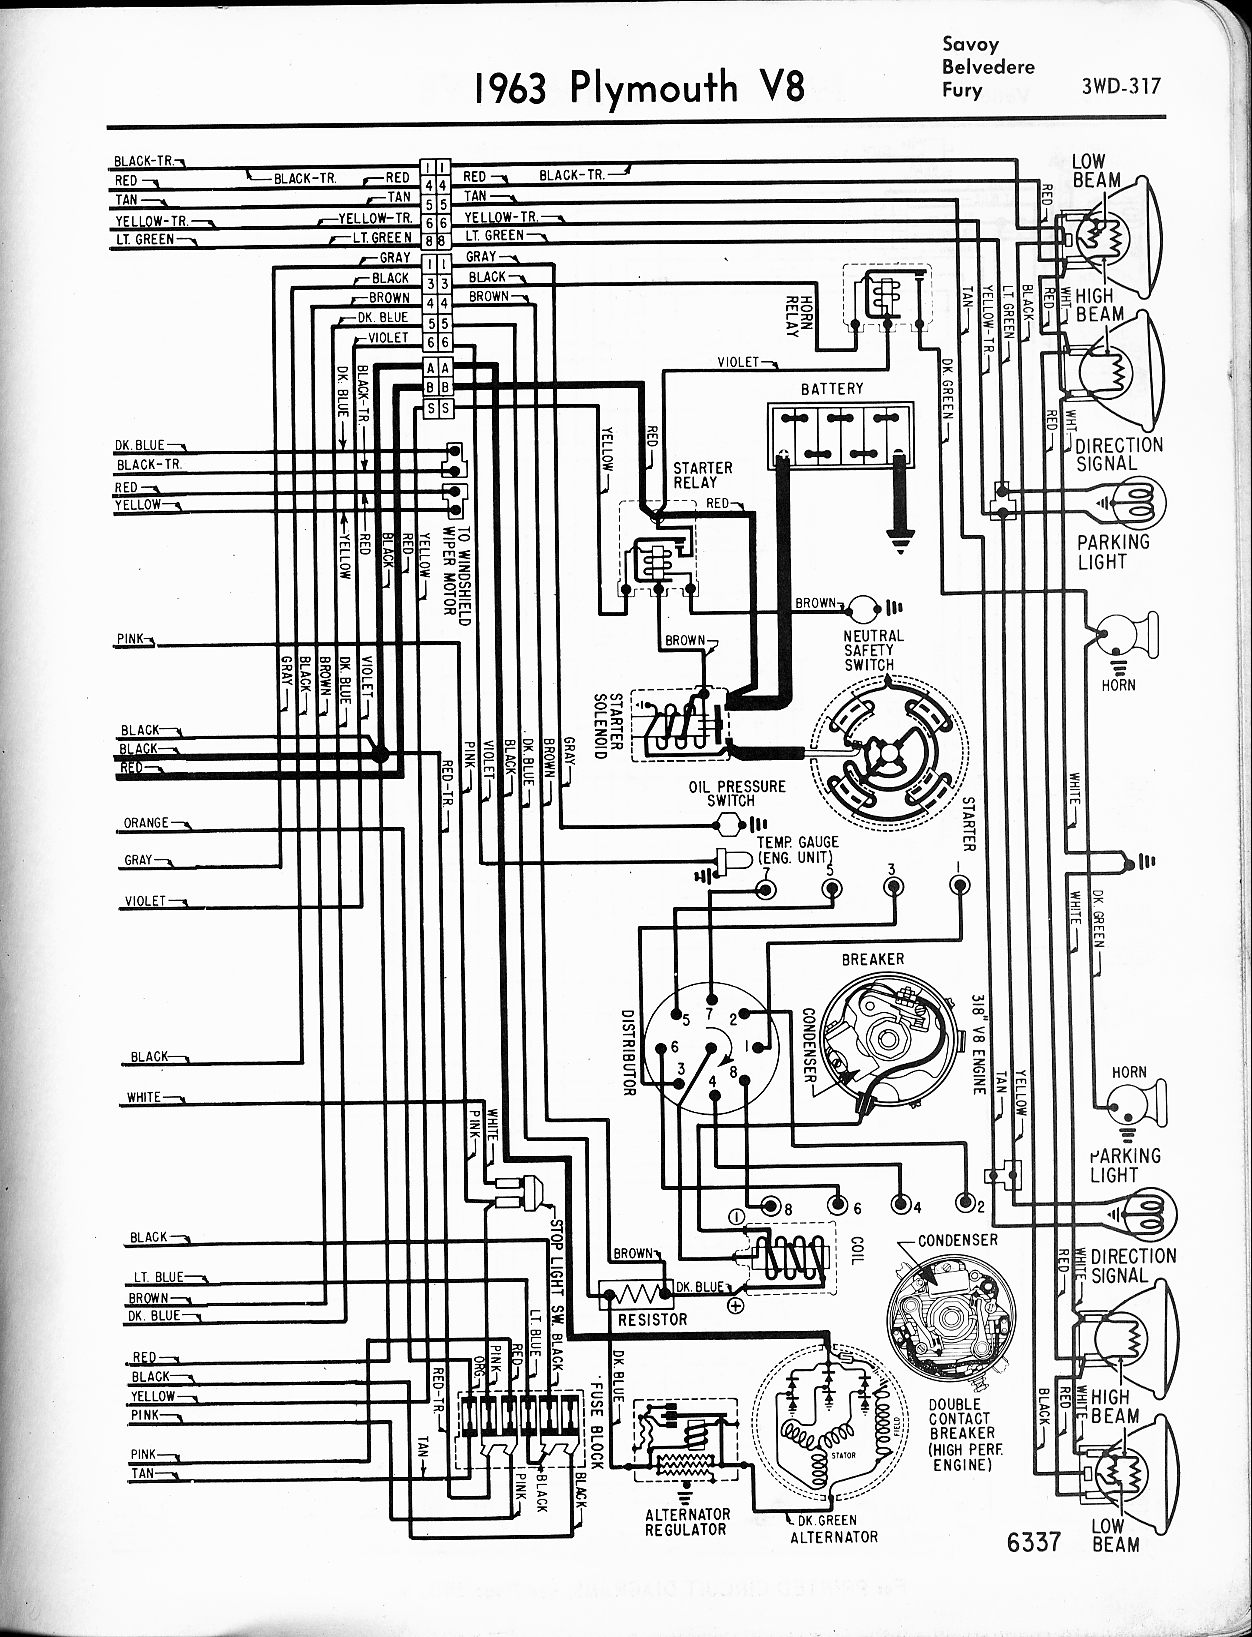 MWire5765 317 diagrams 8001049 rover mini cooper auto electrical wiring 64 valiant wiring diagram at readyjetset.co